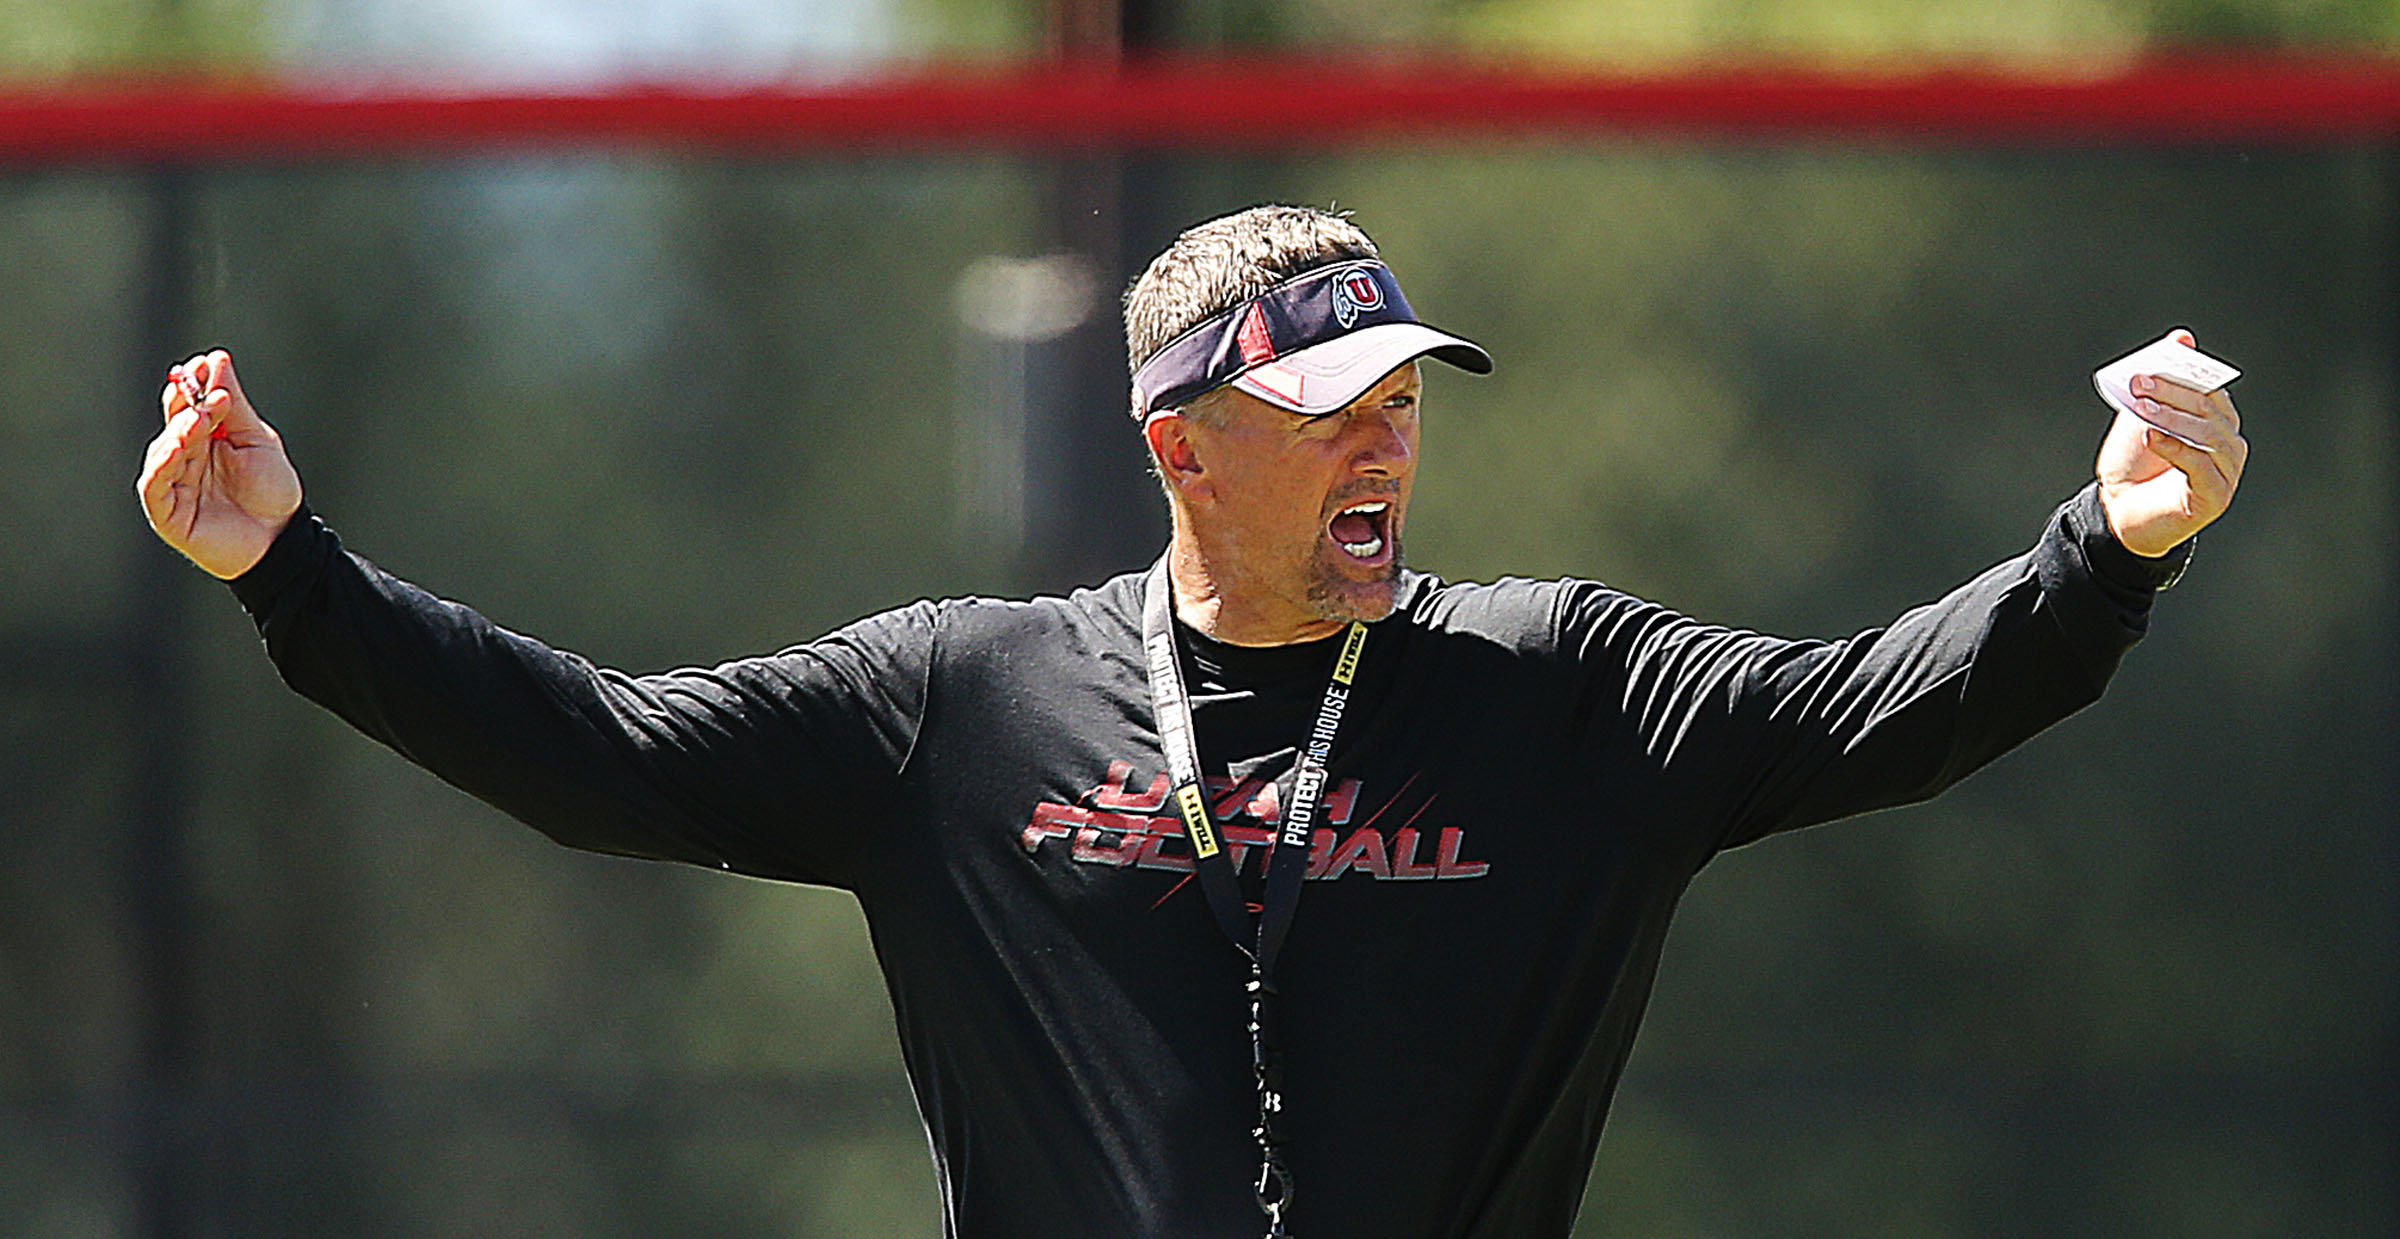 Head football coach Kyle Whittingham calls out to his team during practice Friday, Aug. 9, 2013.